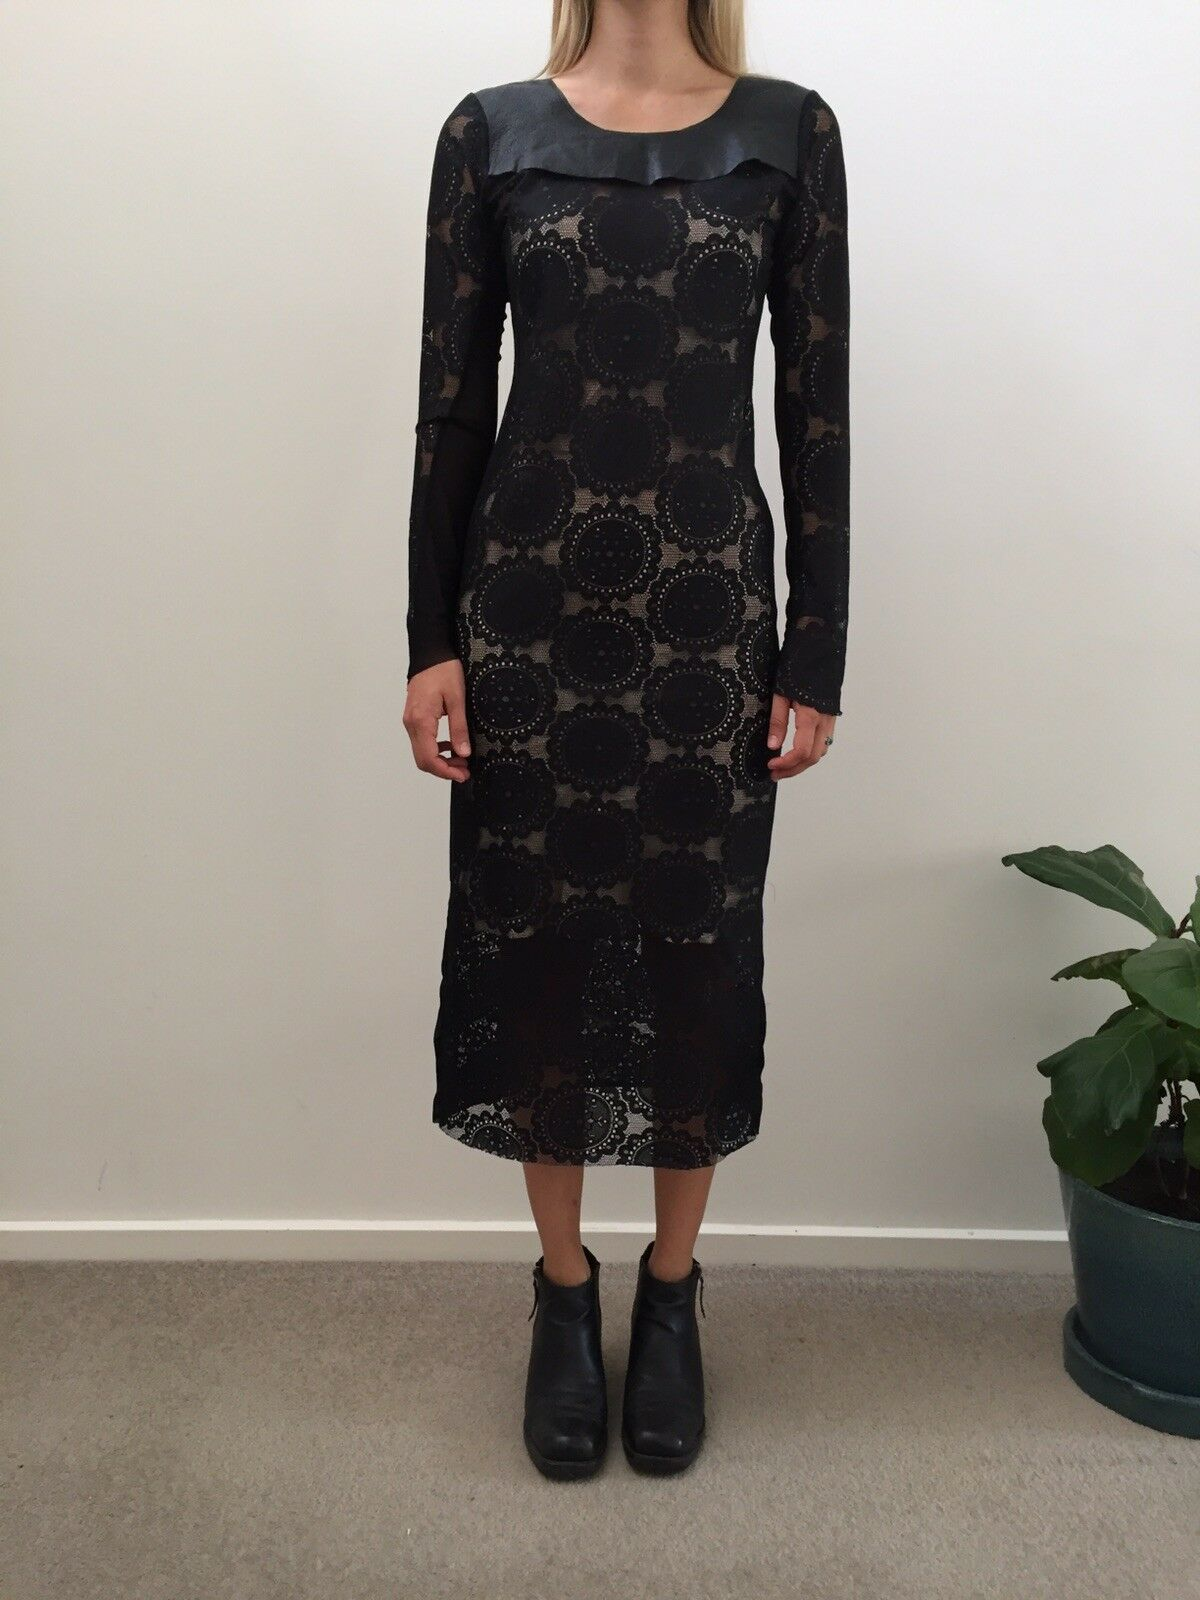 Serpent And The Swan Night Veil  Lace & & & Leather Dress Size 10 Medium  575 f71f89